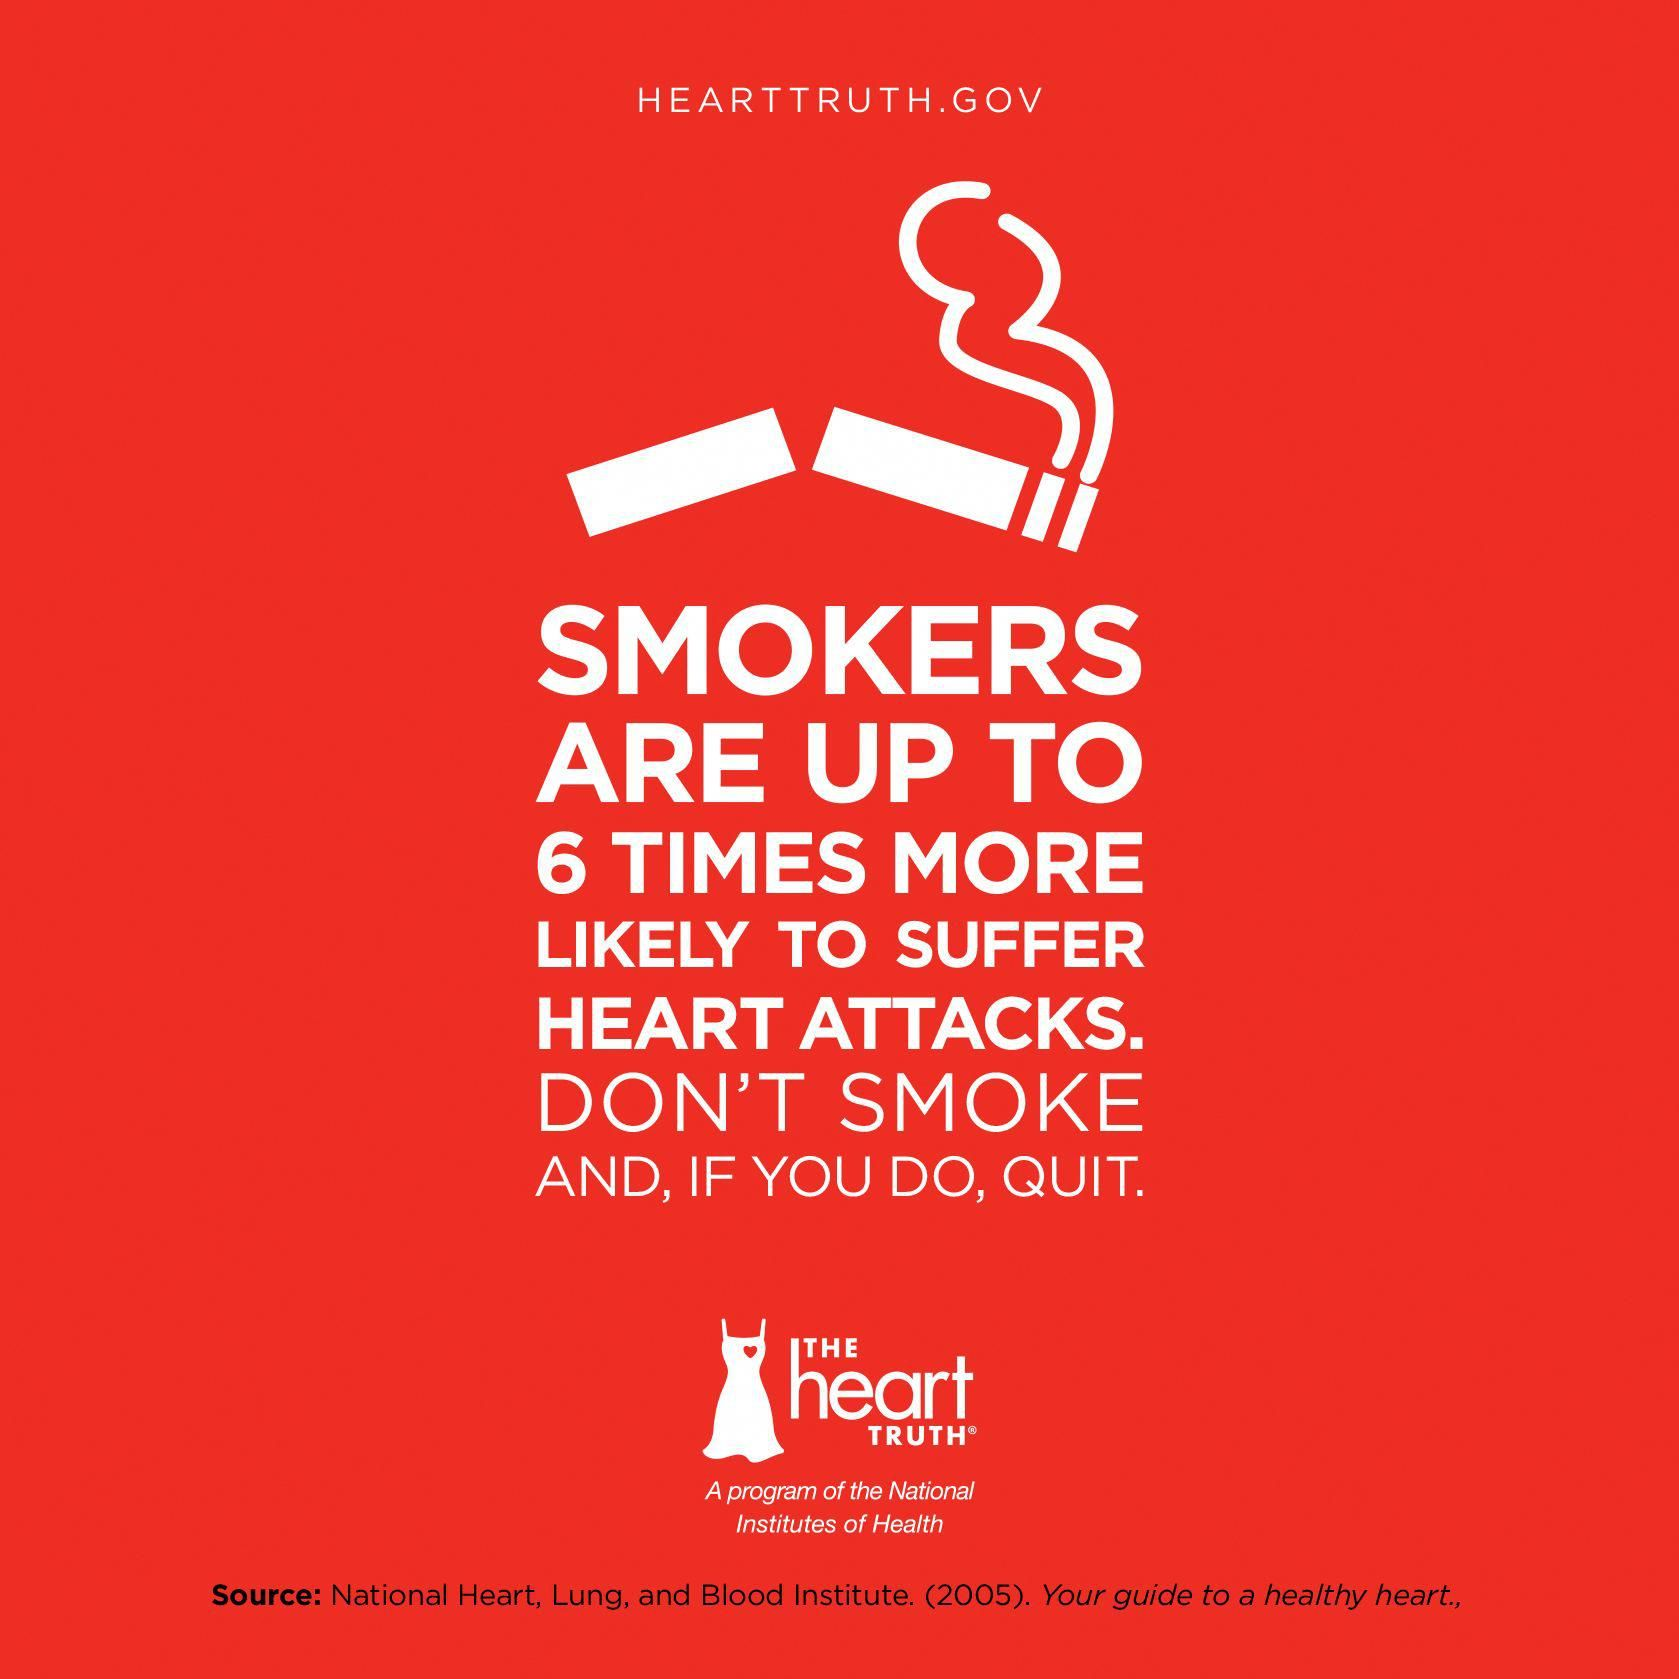 Did You Know There Is A Direct Link Between Smoking And Heart